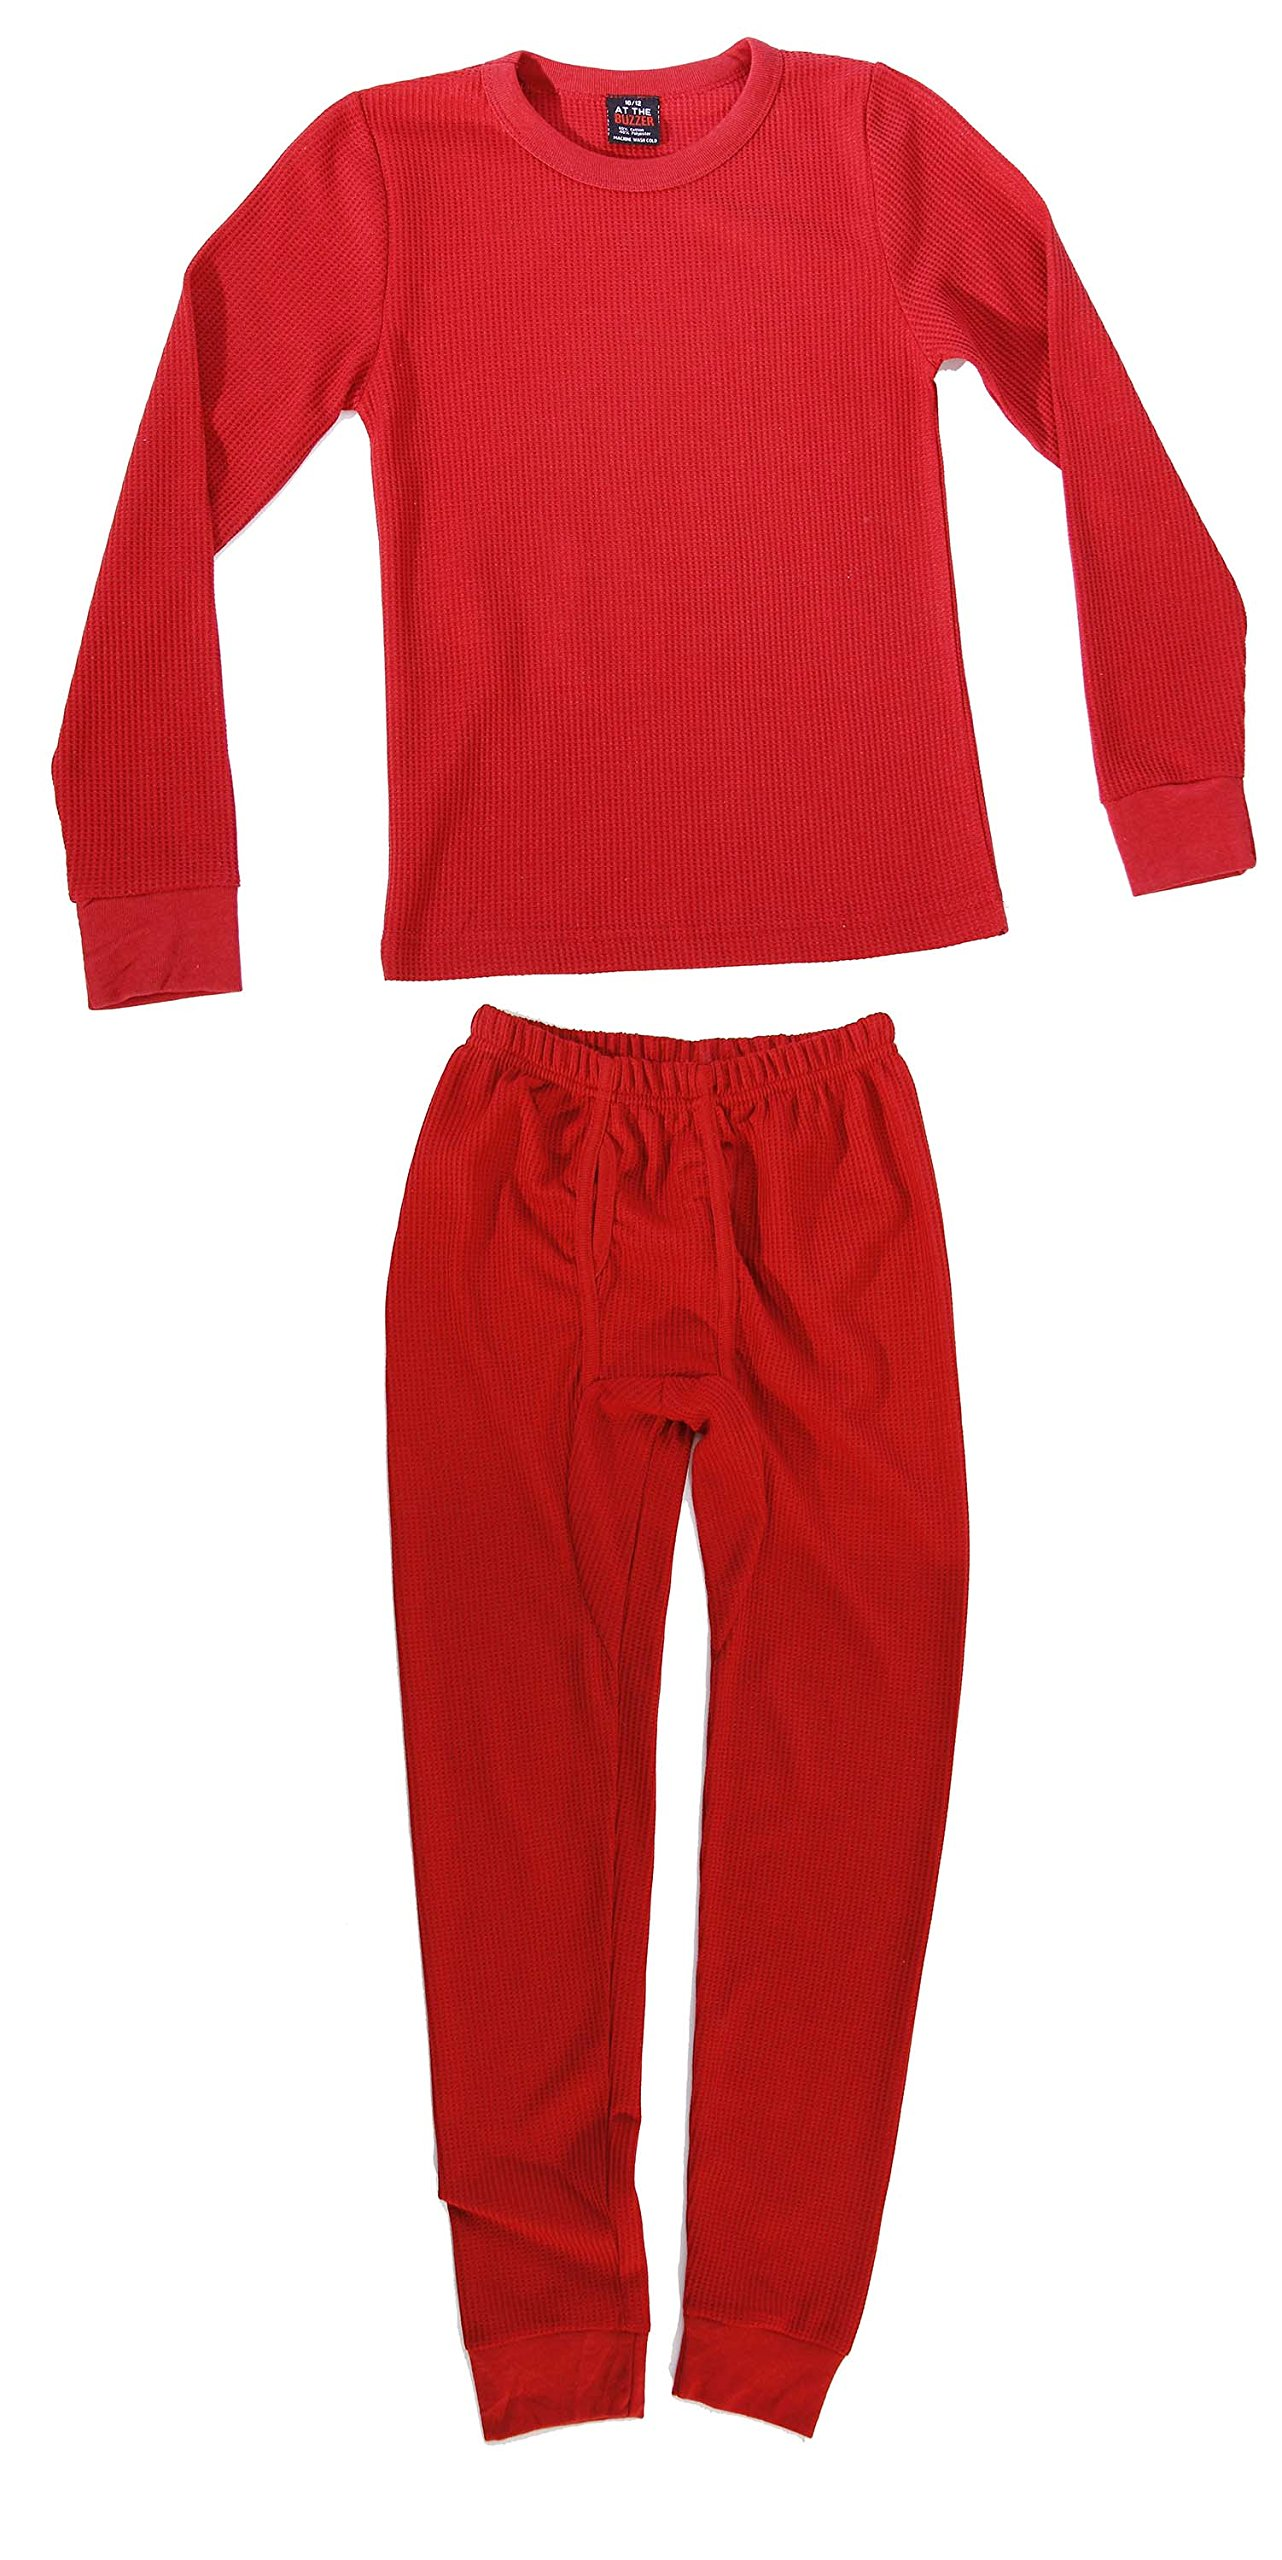 At The Buzzer Thermal Underwear Set for Boys 95362-Red-5/6 by At The Buzzer